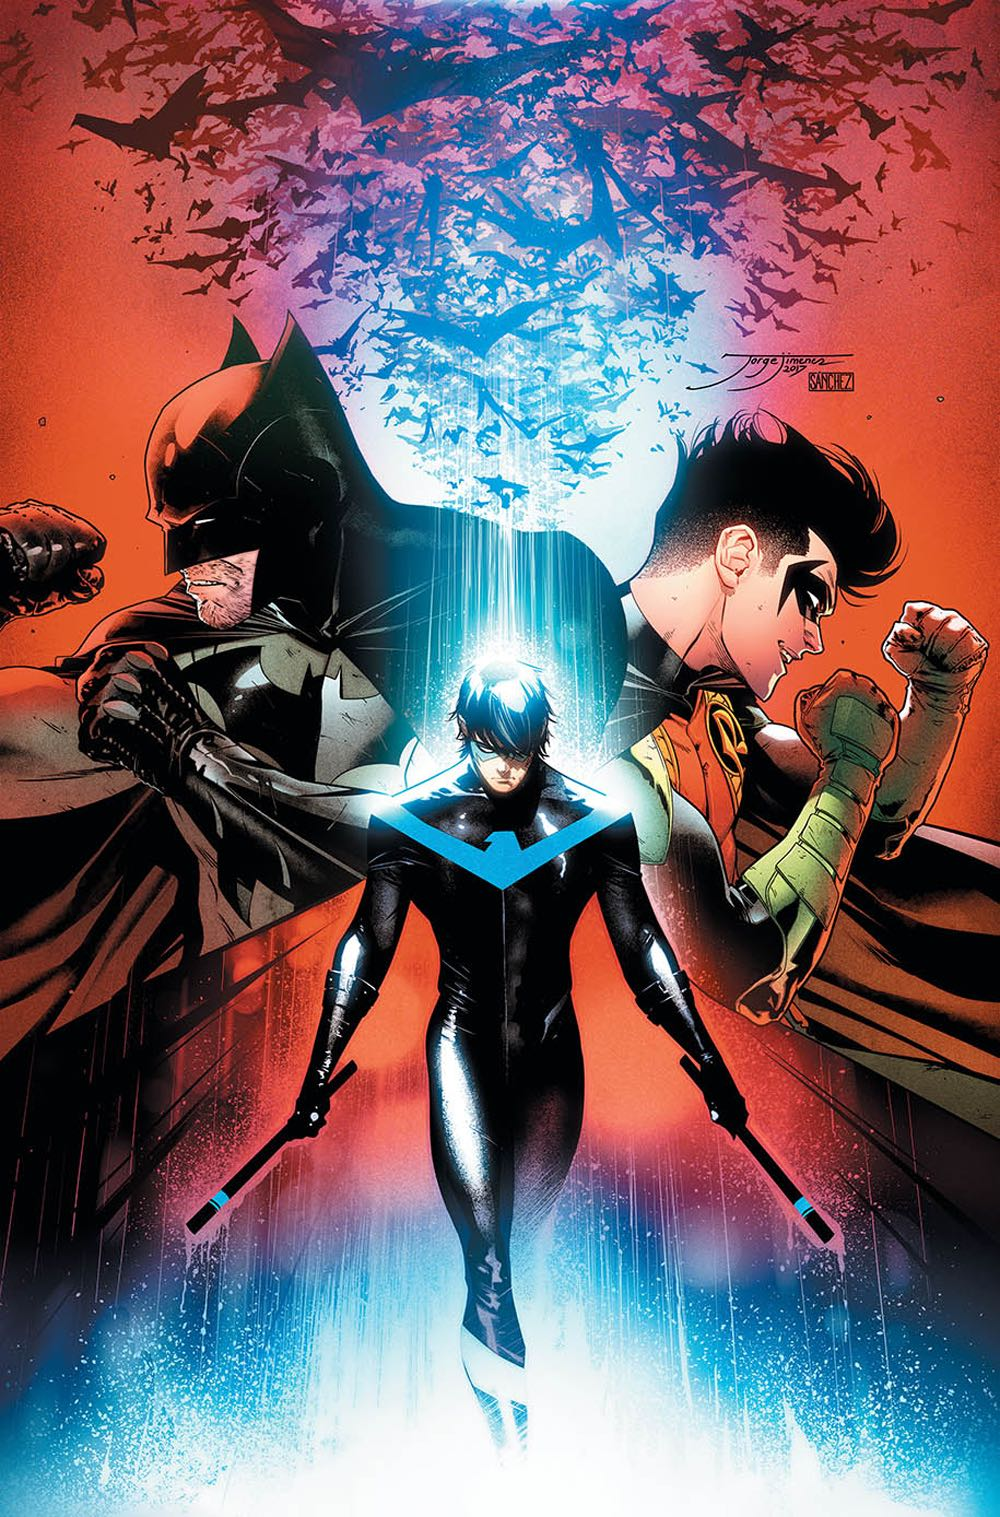 Episode 19 Cover of the Week! - (DC) Nightwing #37Cover by Jorge JimenezWritten by Sam HumphriesIllustrated by Klaus JansonDid the Content Match the Drapes? - Absolutely not :'(